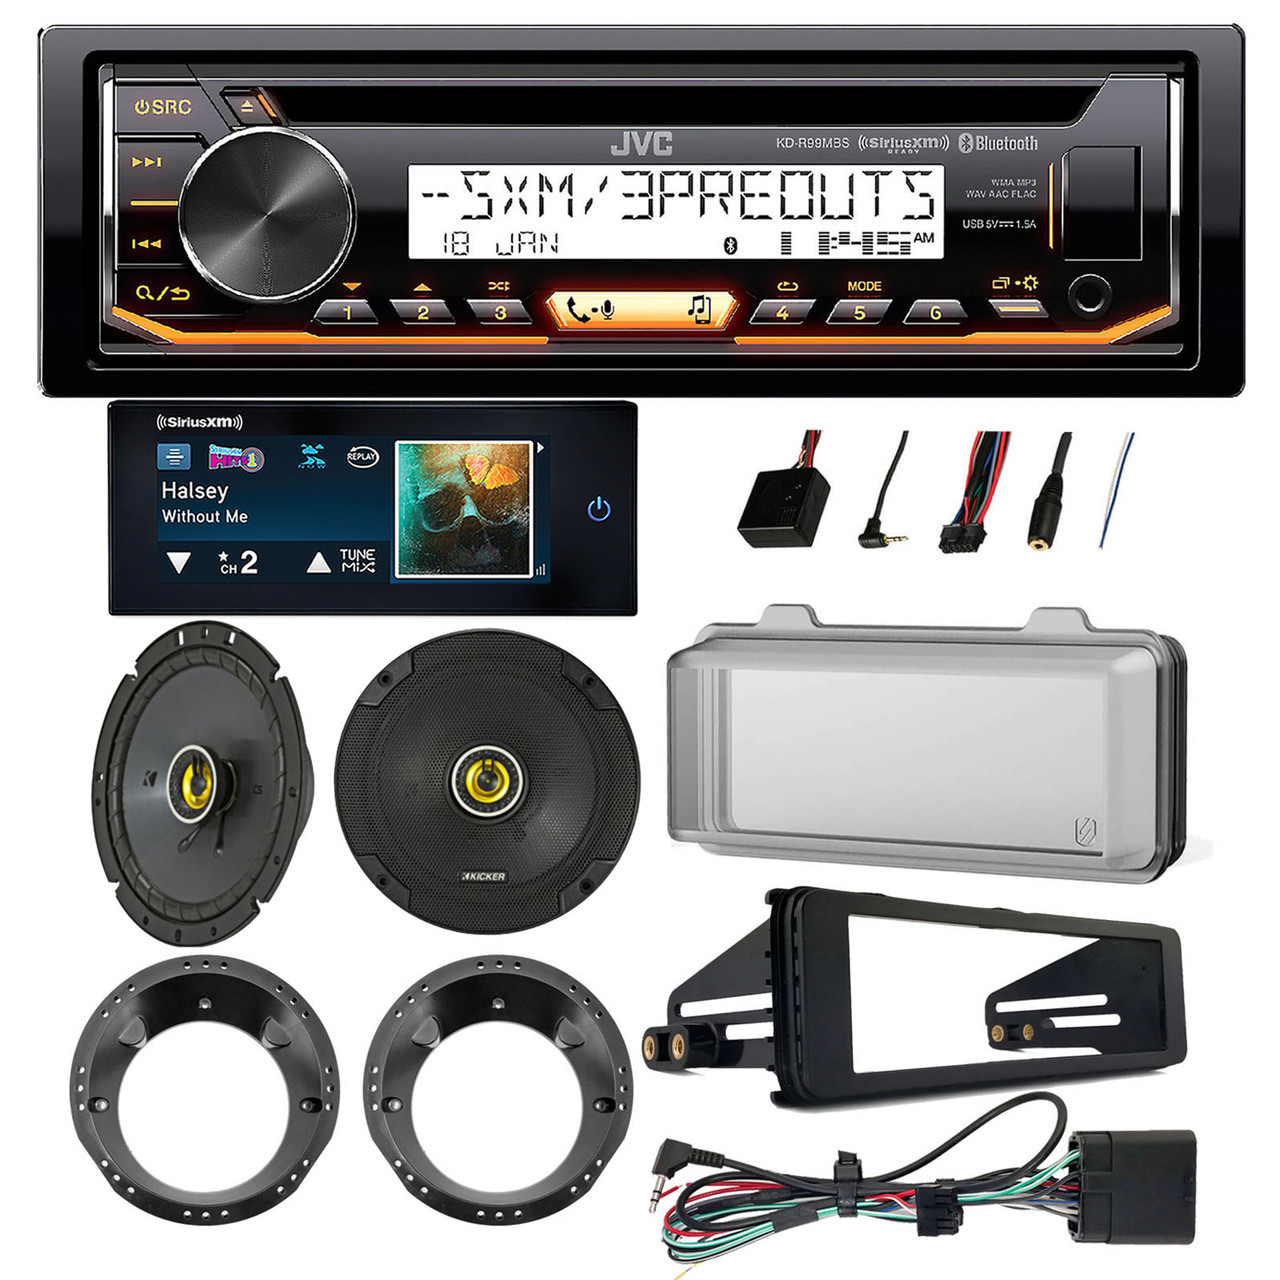 FOR 98-13 HARLEY TOURING RADIO INSTALL ADAPTER W// THUMB CONTROL INTERFACE STEREO